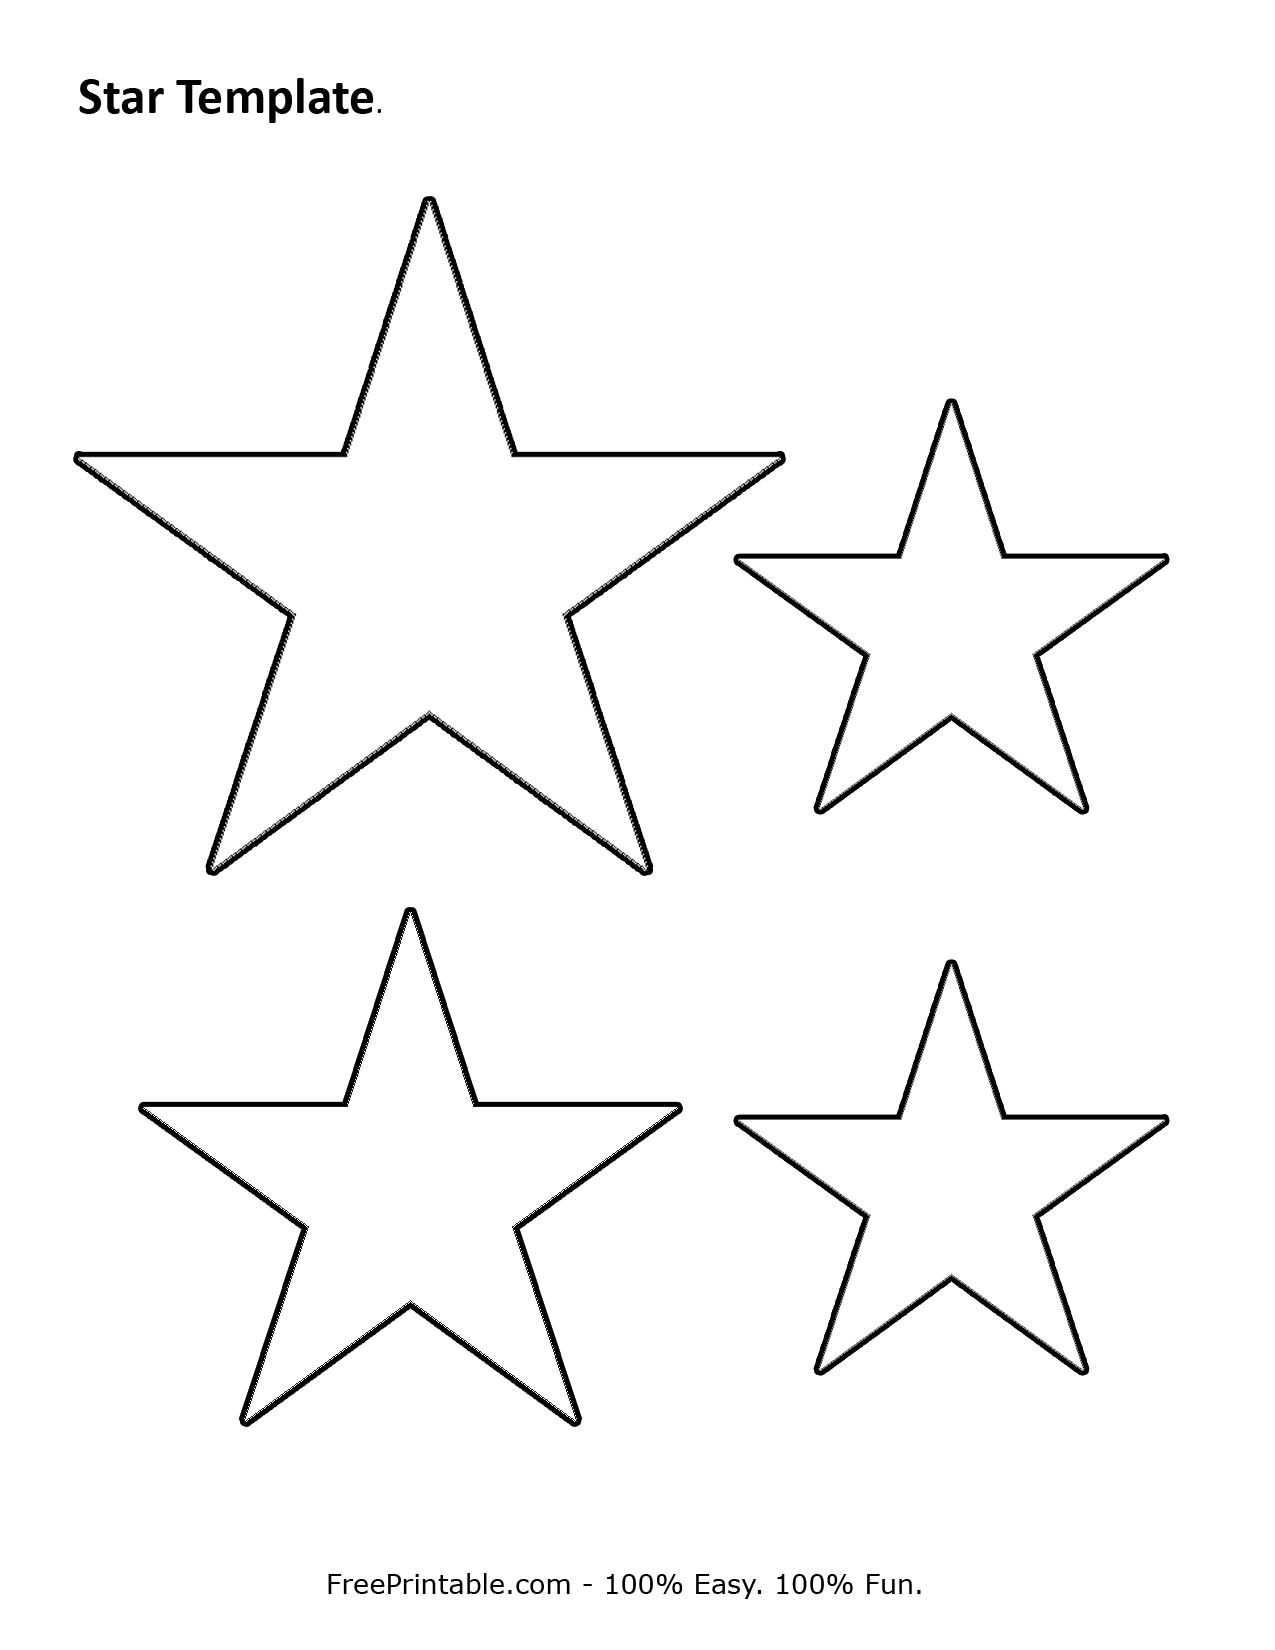 Customize Your Free Printable Star Template